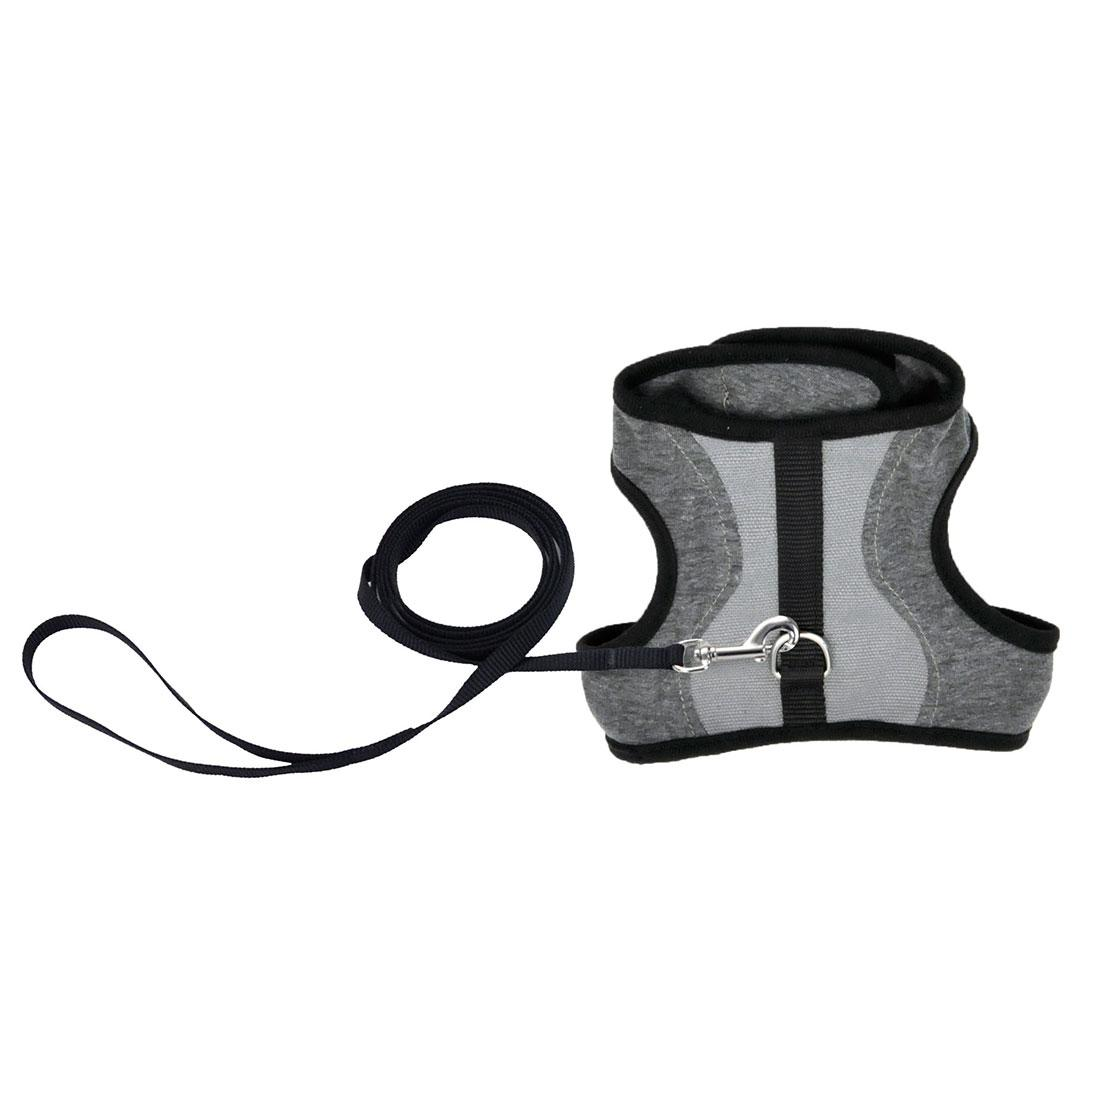 Coastal Adjustable Wrap Harness with Leash for Cats, Gray Image